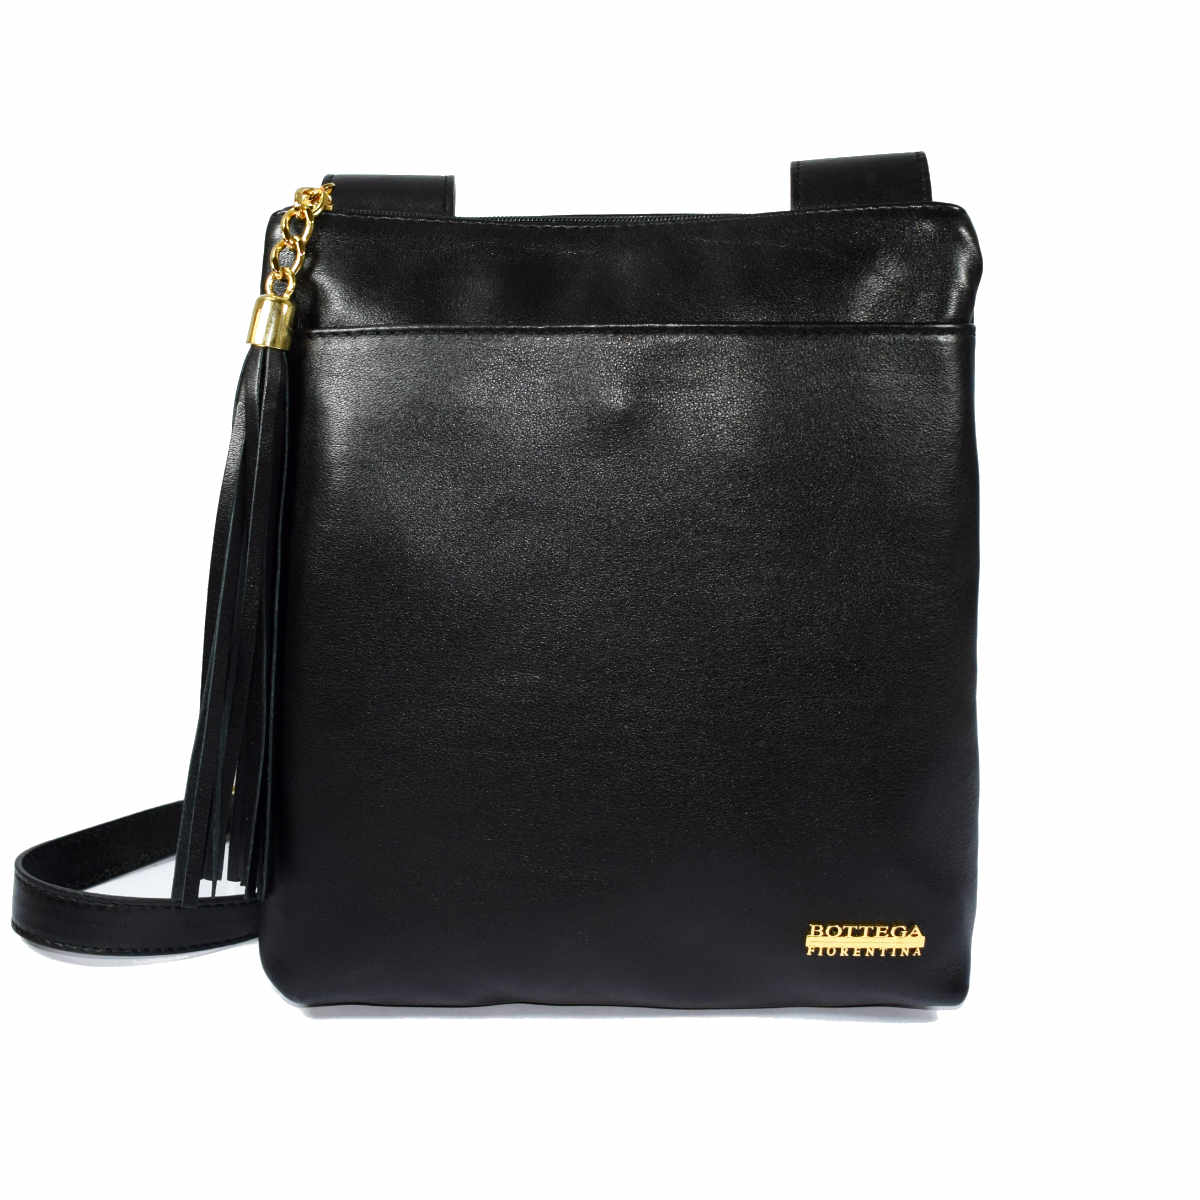 11024 WOMAN SHOULDER BAG MEDIUM by Bottega Fiorentina